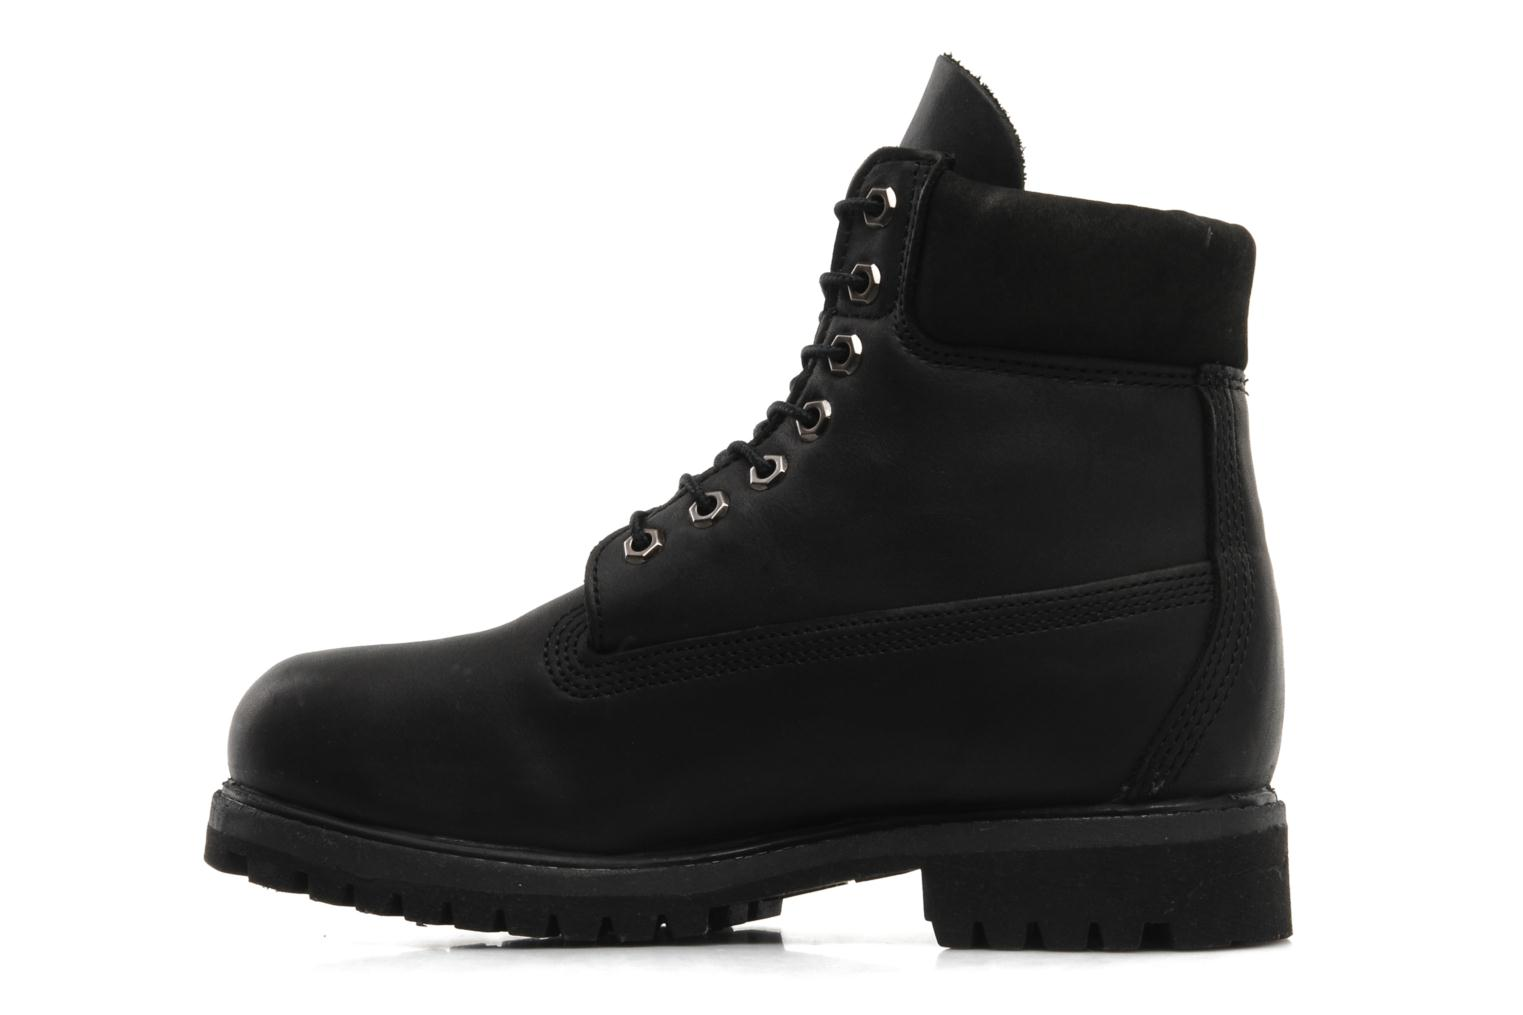 6in premium boot Black Smooth